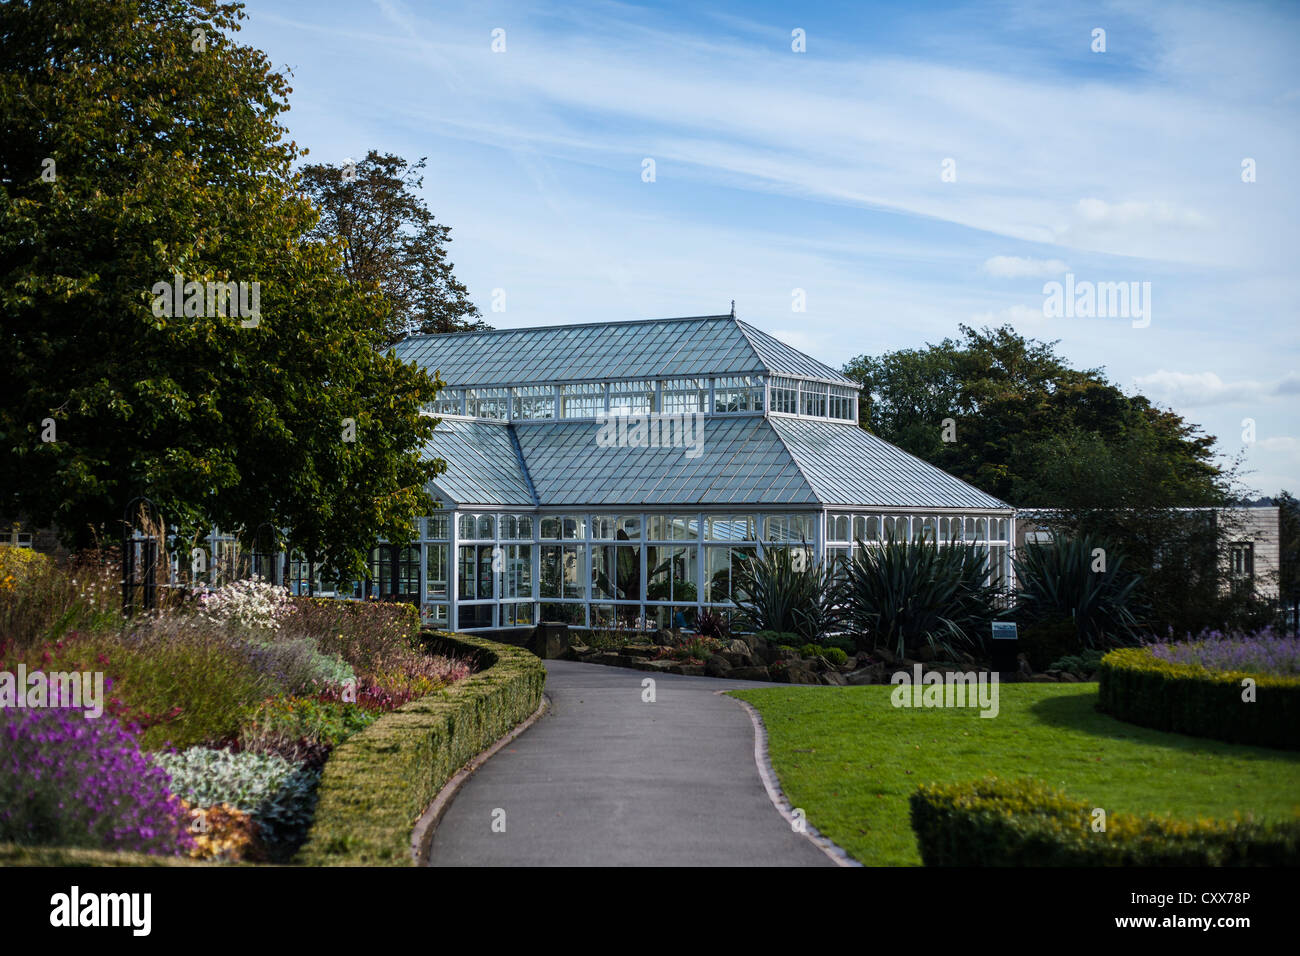 The Conservatory in Greenhead Park, Huddersfield, West Yorkshire - Stock Image